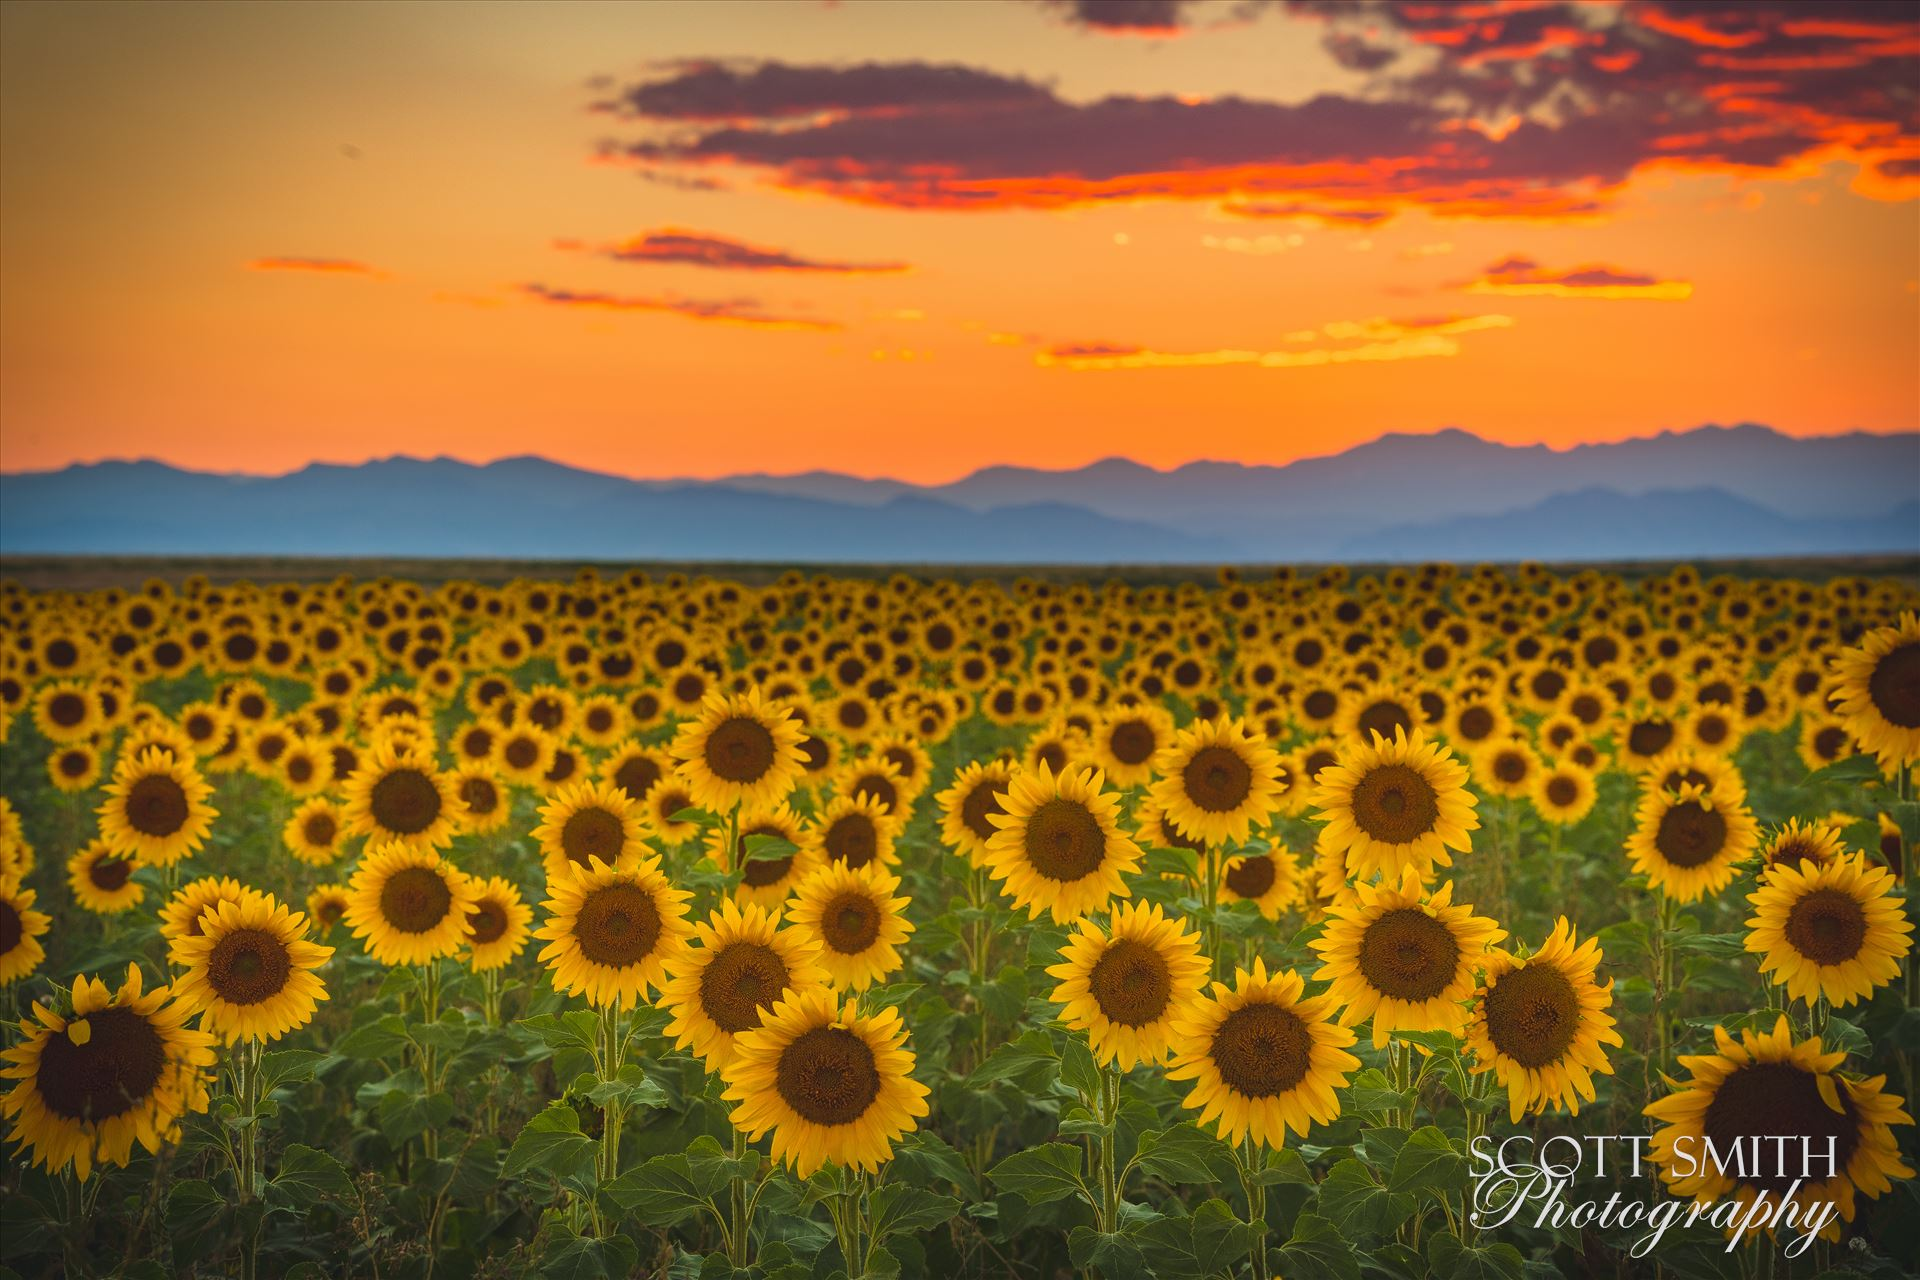 Denver Sunflowers at Sunset No 1Sunflower fields near Denver International Airport, on August 20th, 2016.Near 56th and E470.